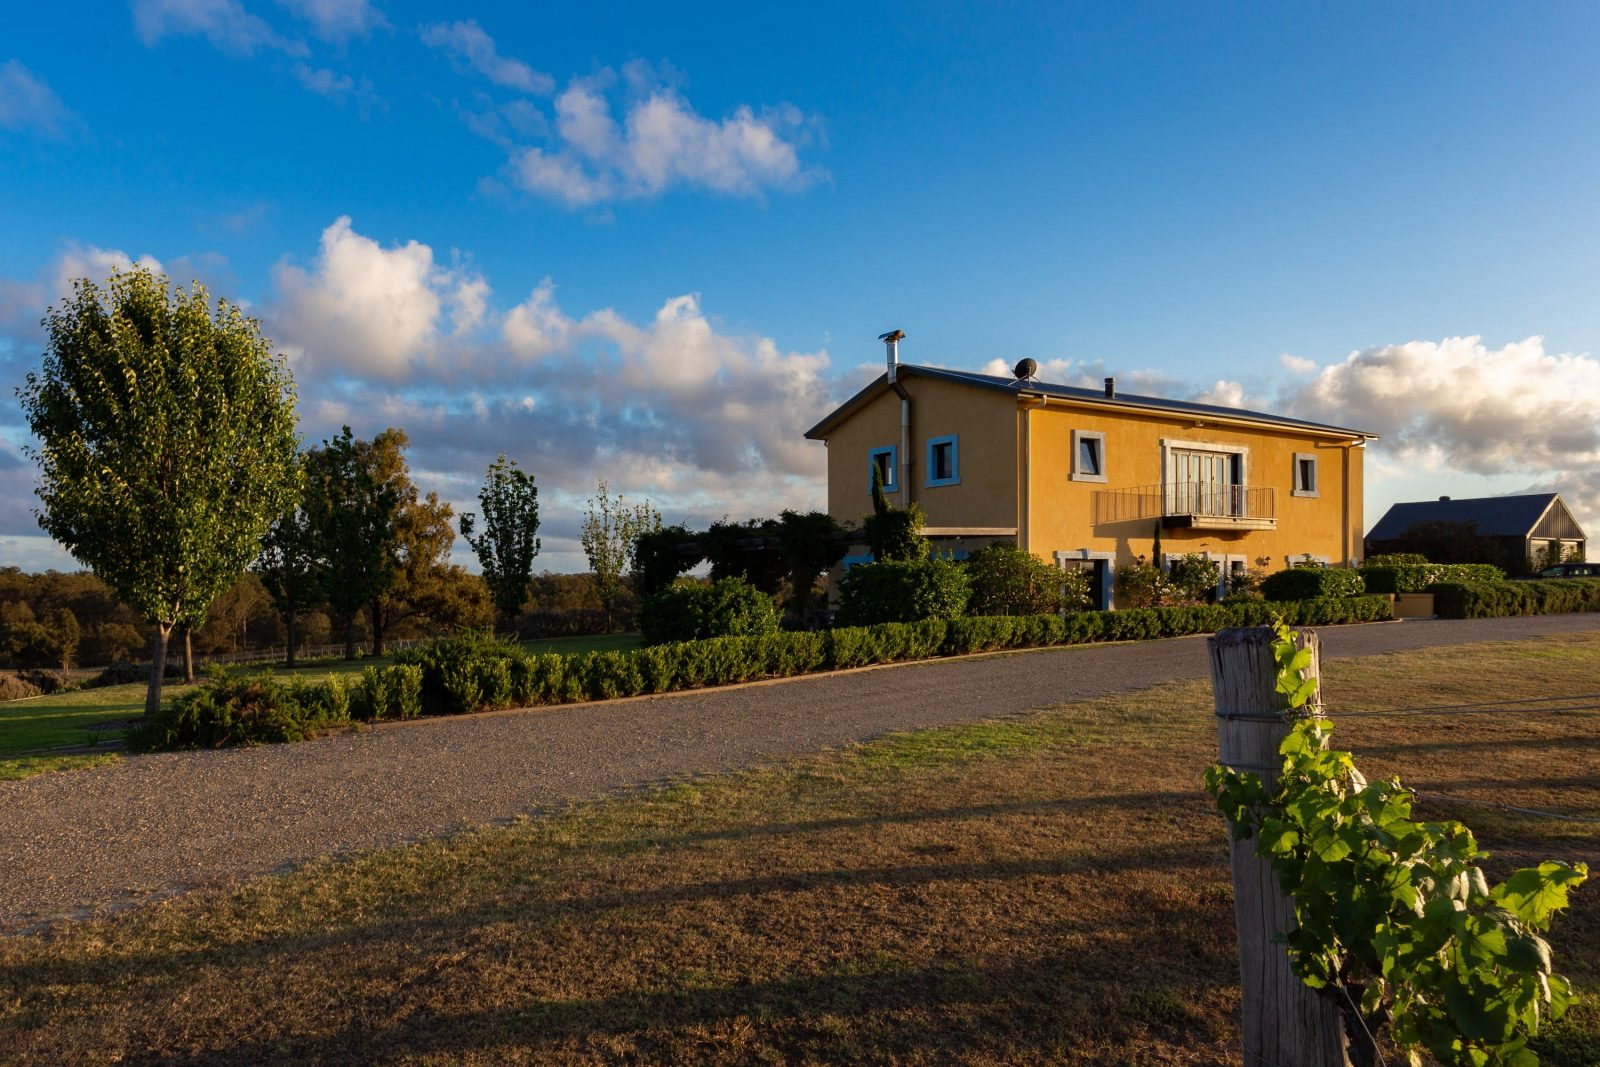 The yellow Tuscan villa on top of the hill